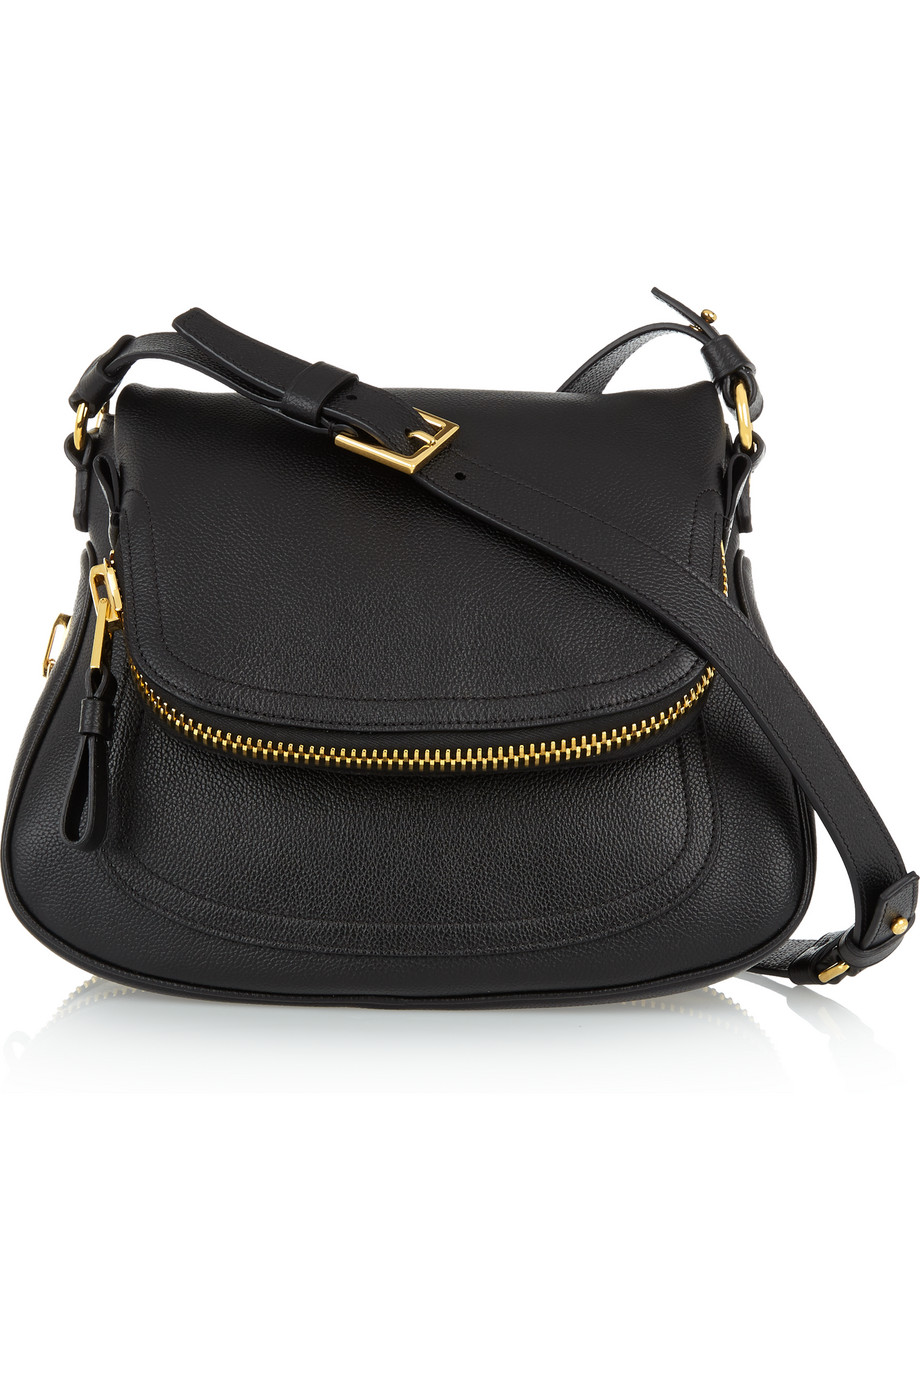 Jennifer Medium Textured-Leather Shoulder Bag, Black, Women's